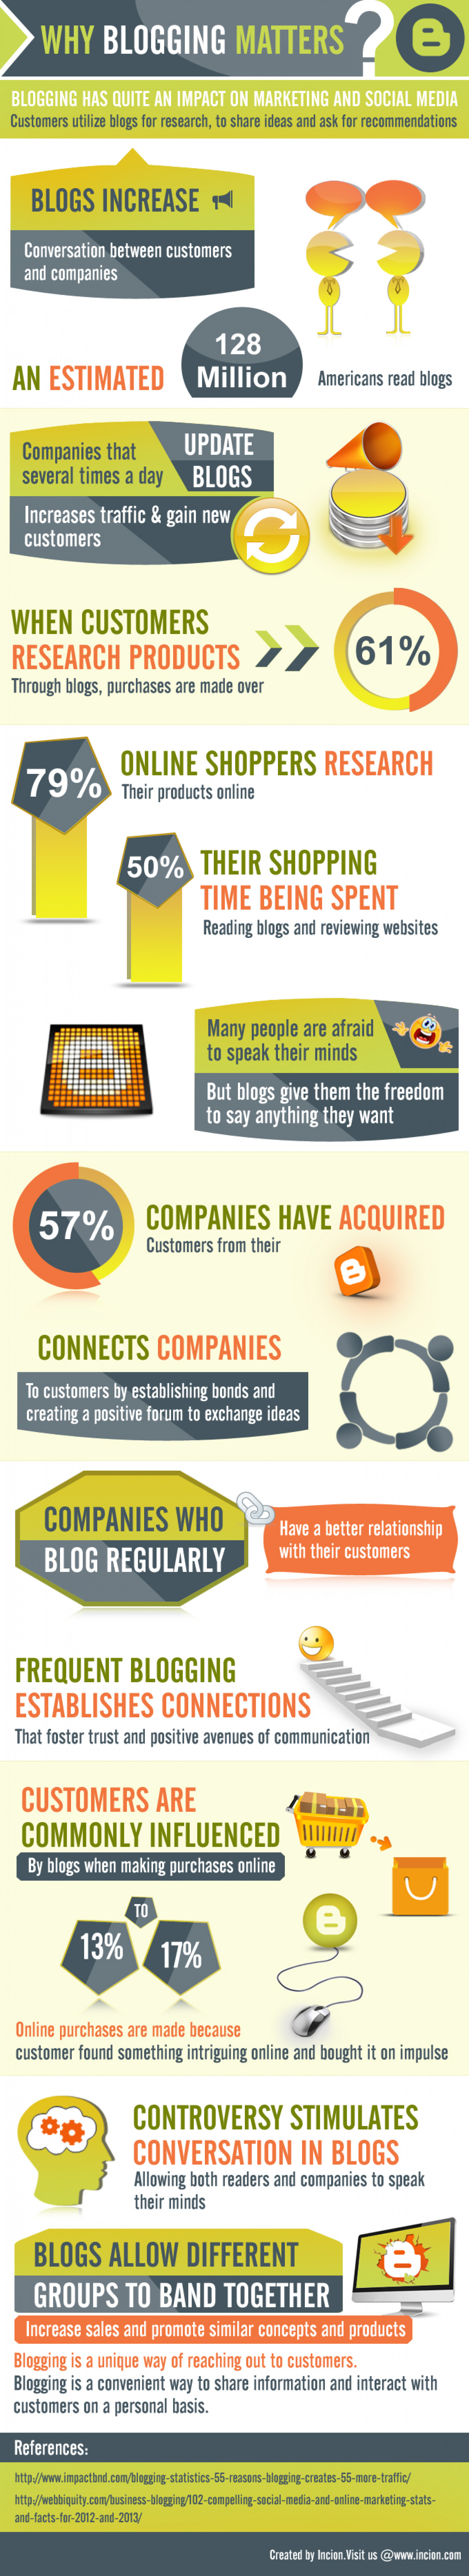 Why Blogging Matters? Infographic